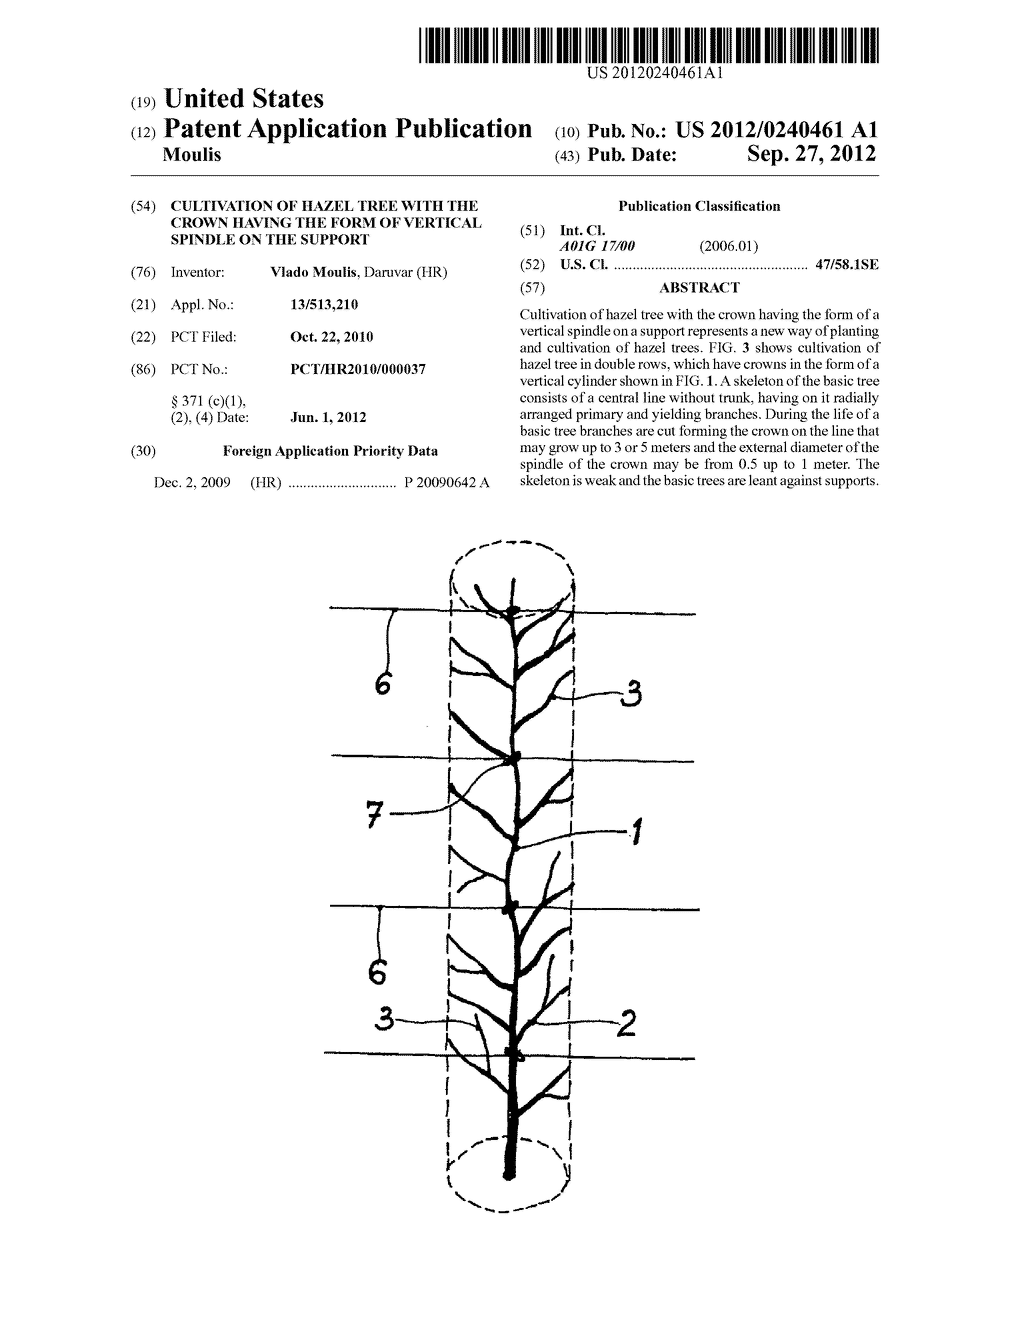 CULTIVATION OF HAZEL TREE WITH THE CROWN HAVING THE FORM OF VERTICAL     SPINDLE ON THE SUPPORT - diagram, schematic, and image 01